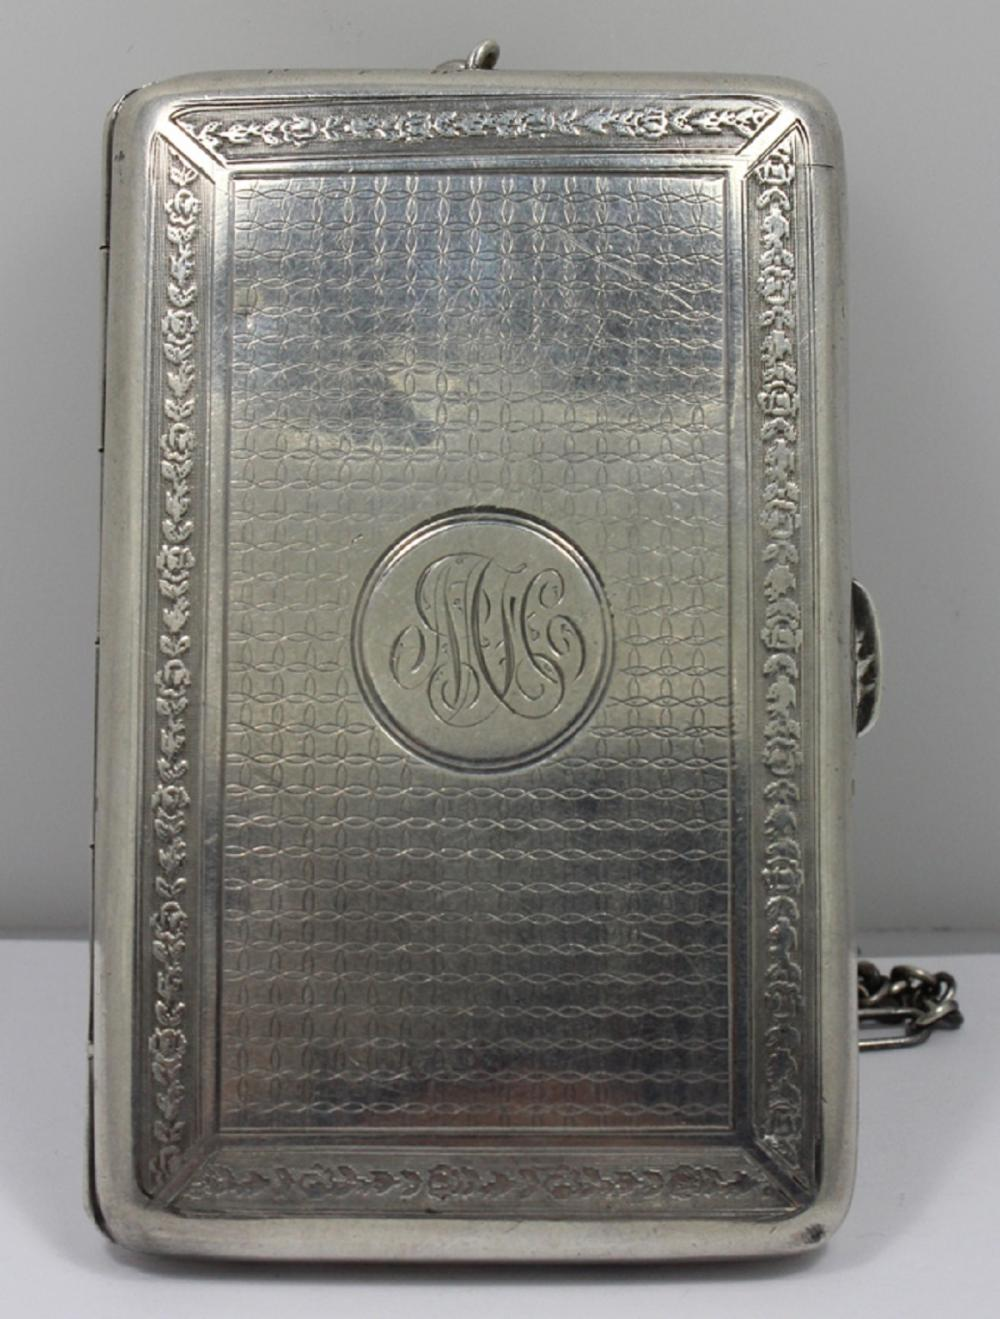 Antique Sterling (0.925) Silver Half Sovereign & Sovereign Compact Case with provision for cigarettes. Stamped Birmingham, 1912